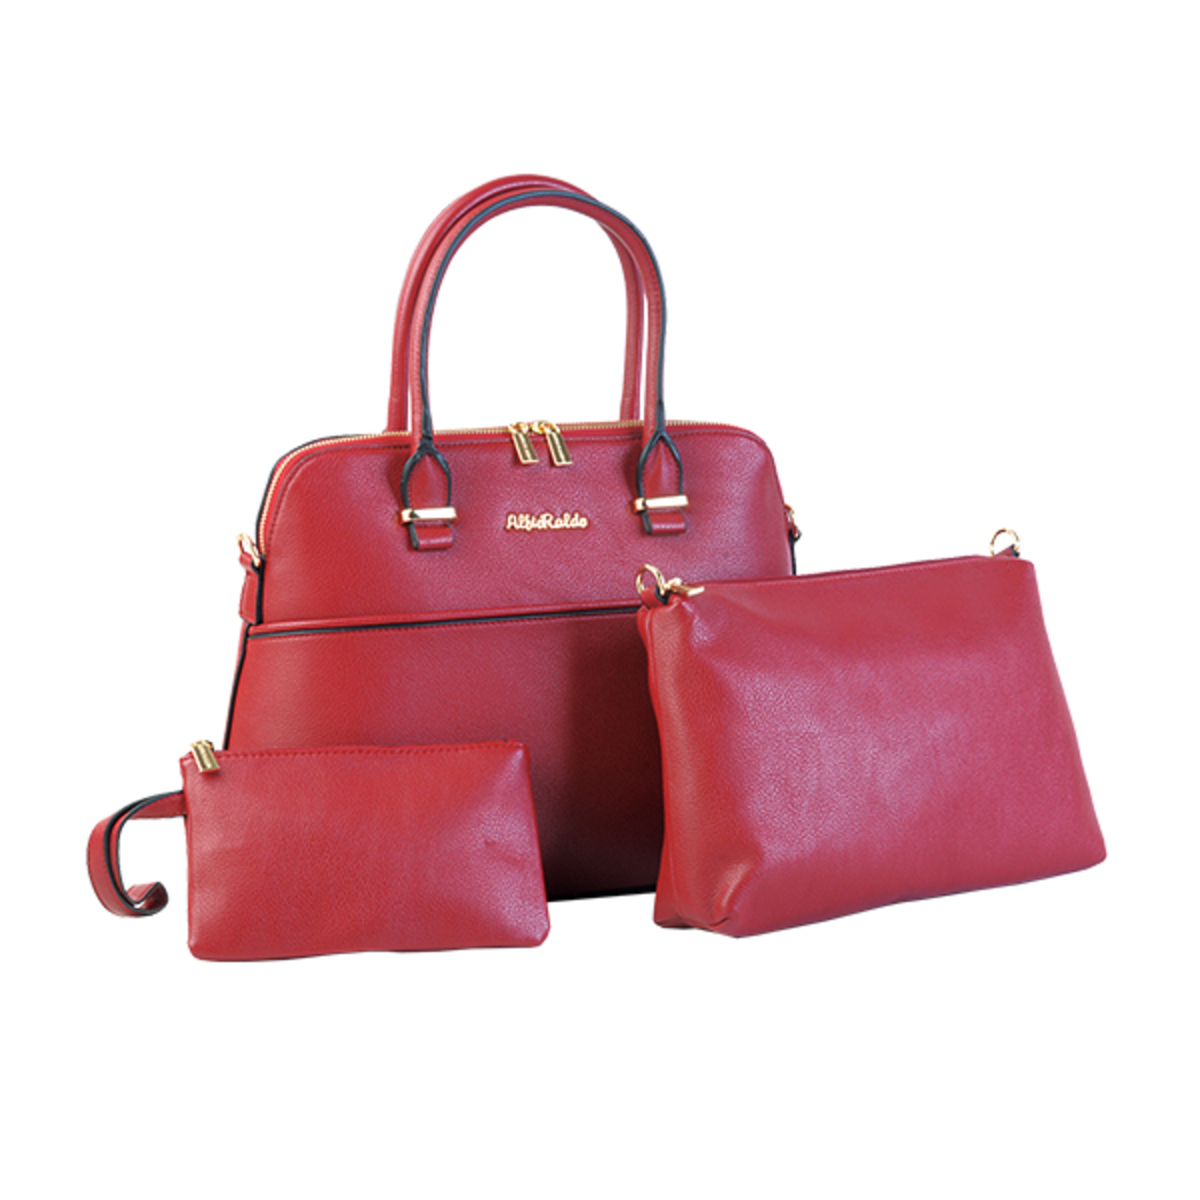 27c60cd61b Alfio Raldo Lux Bag